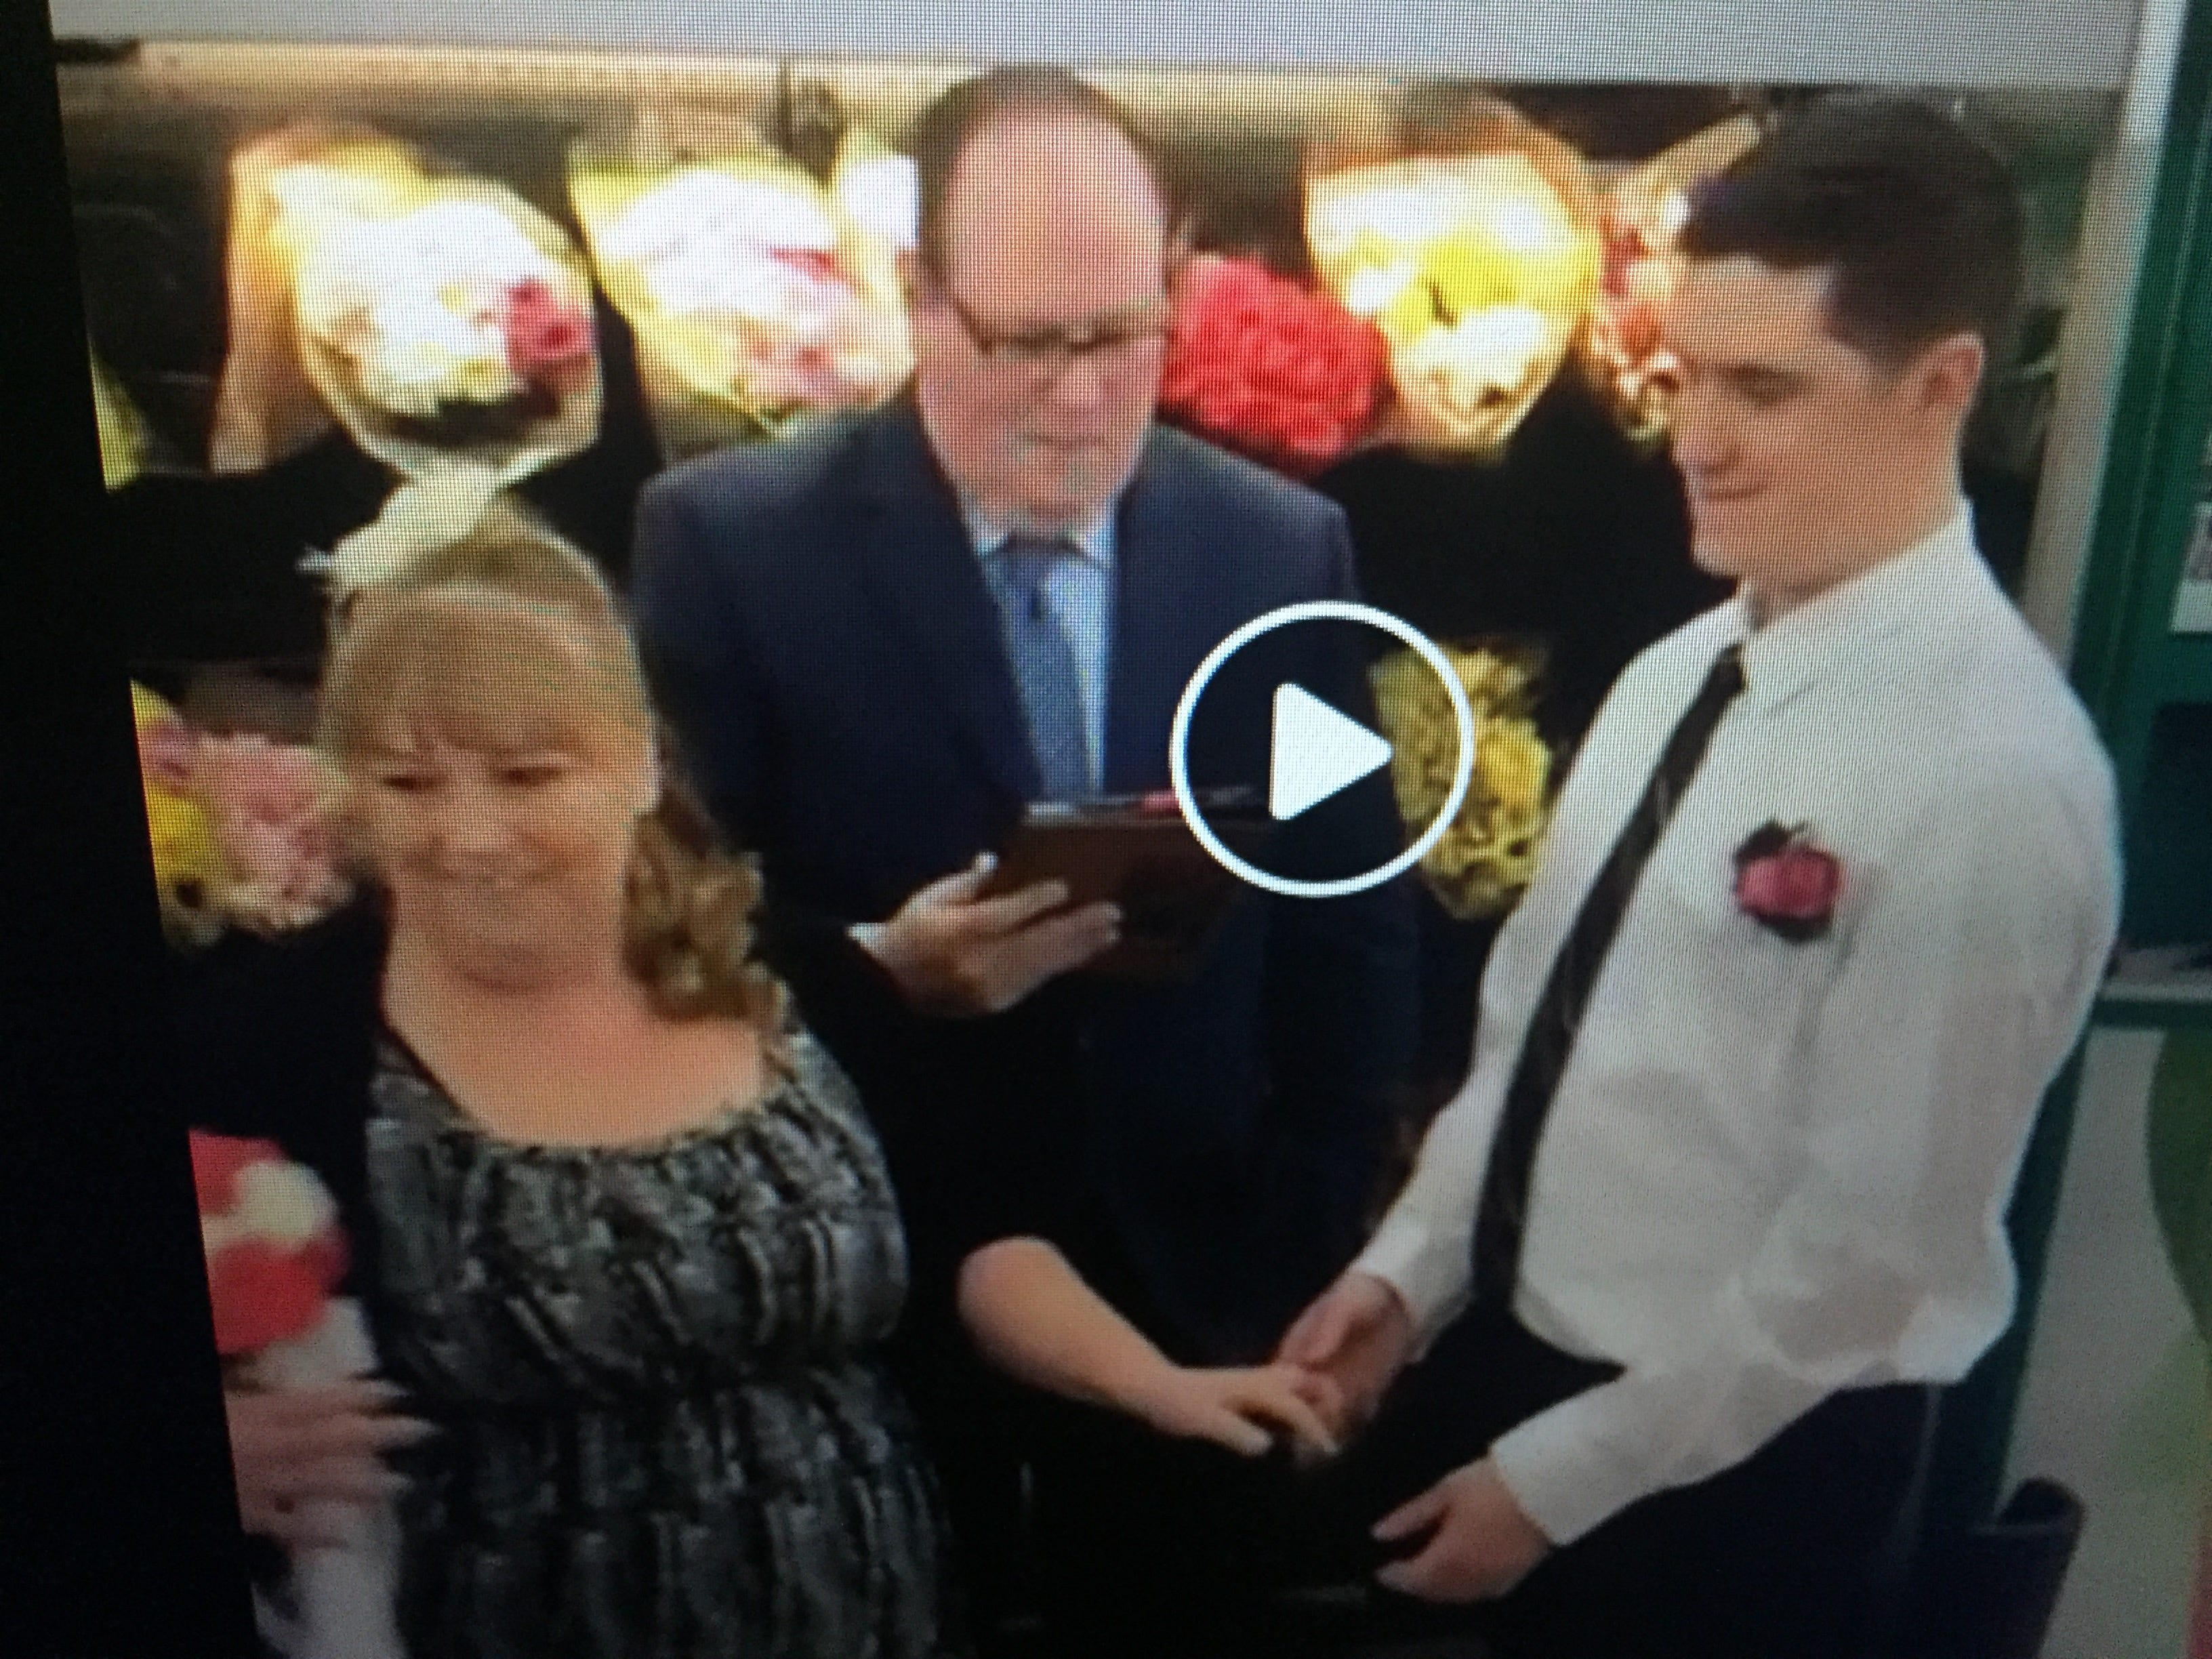 Wedding at Walmart: Employees get married in store just before groom  enlists in U S  Army